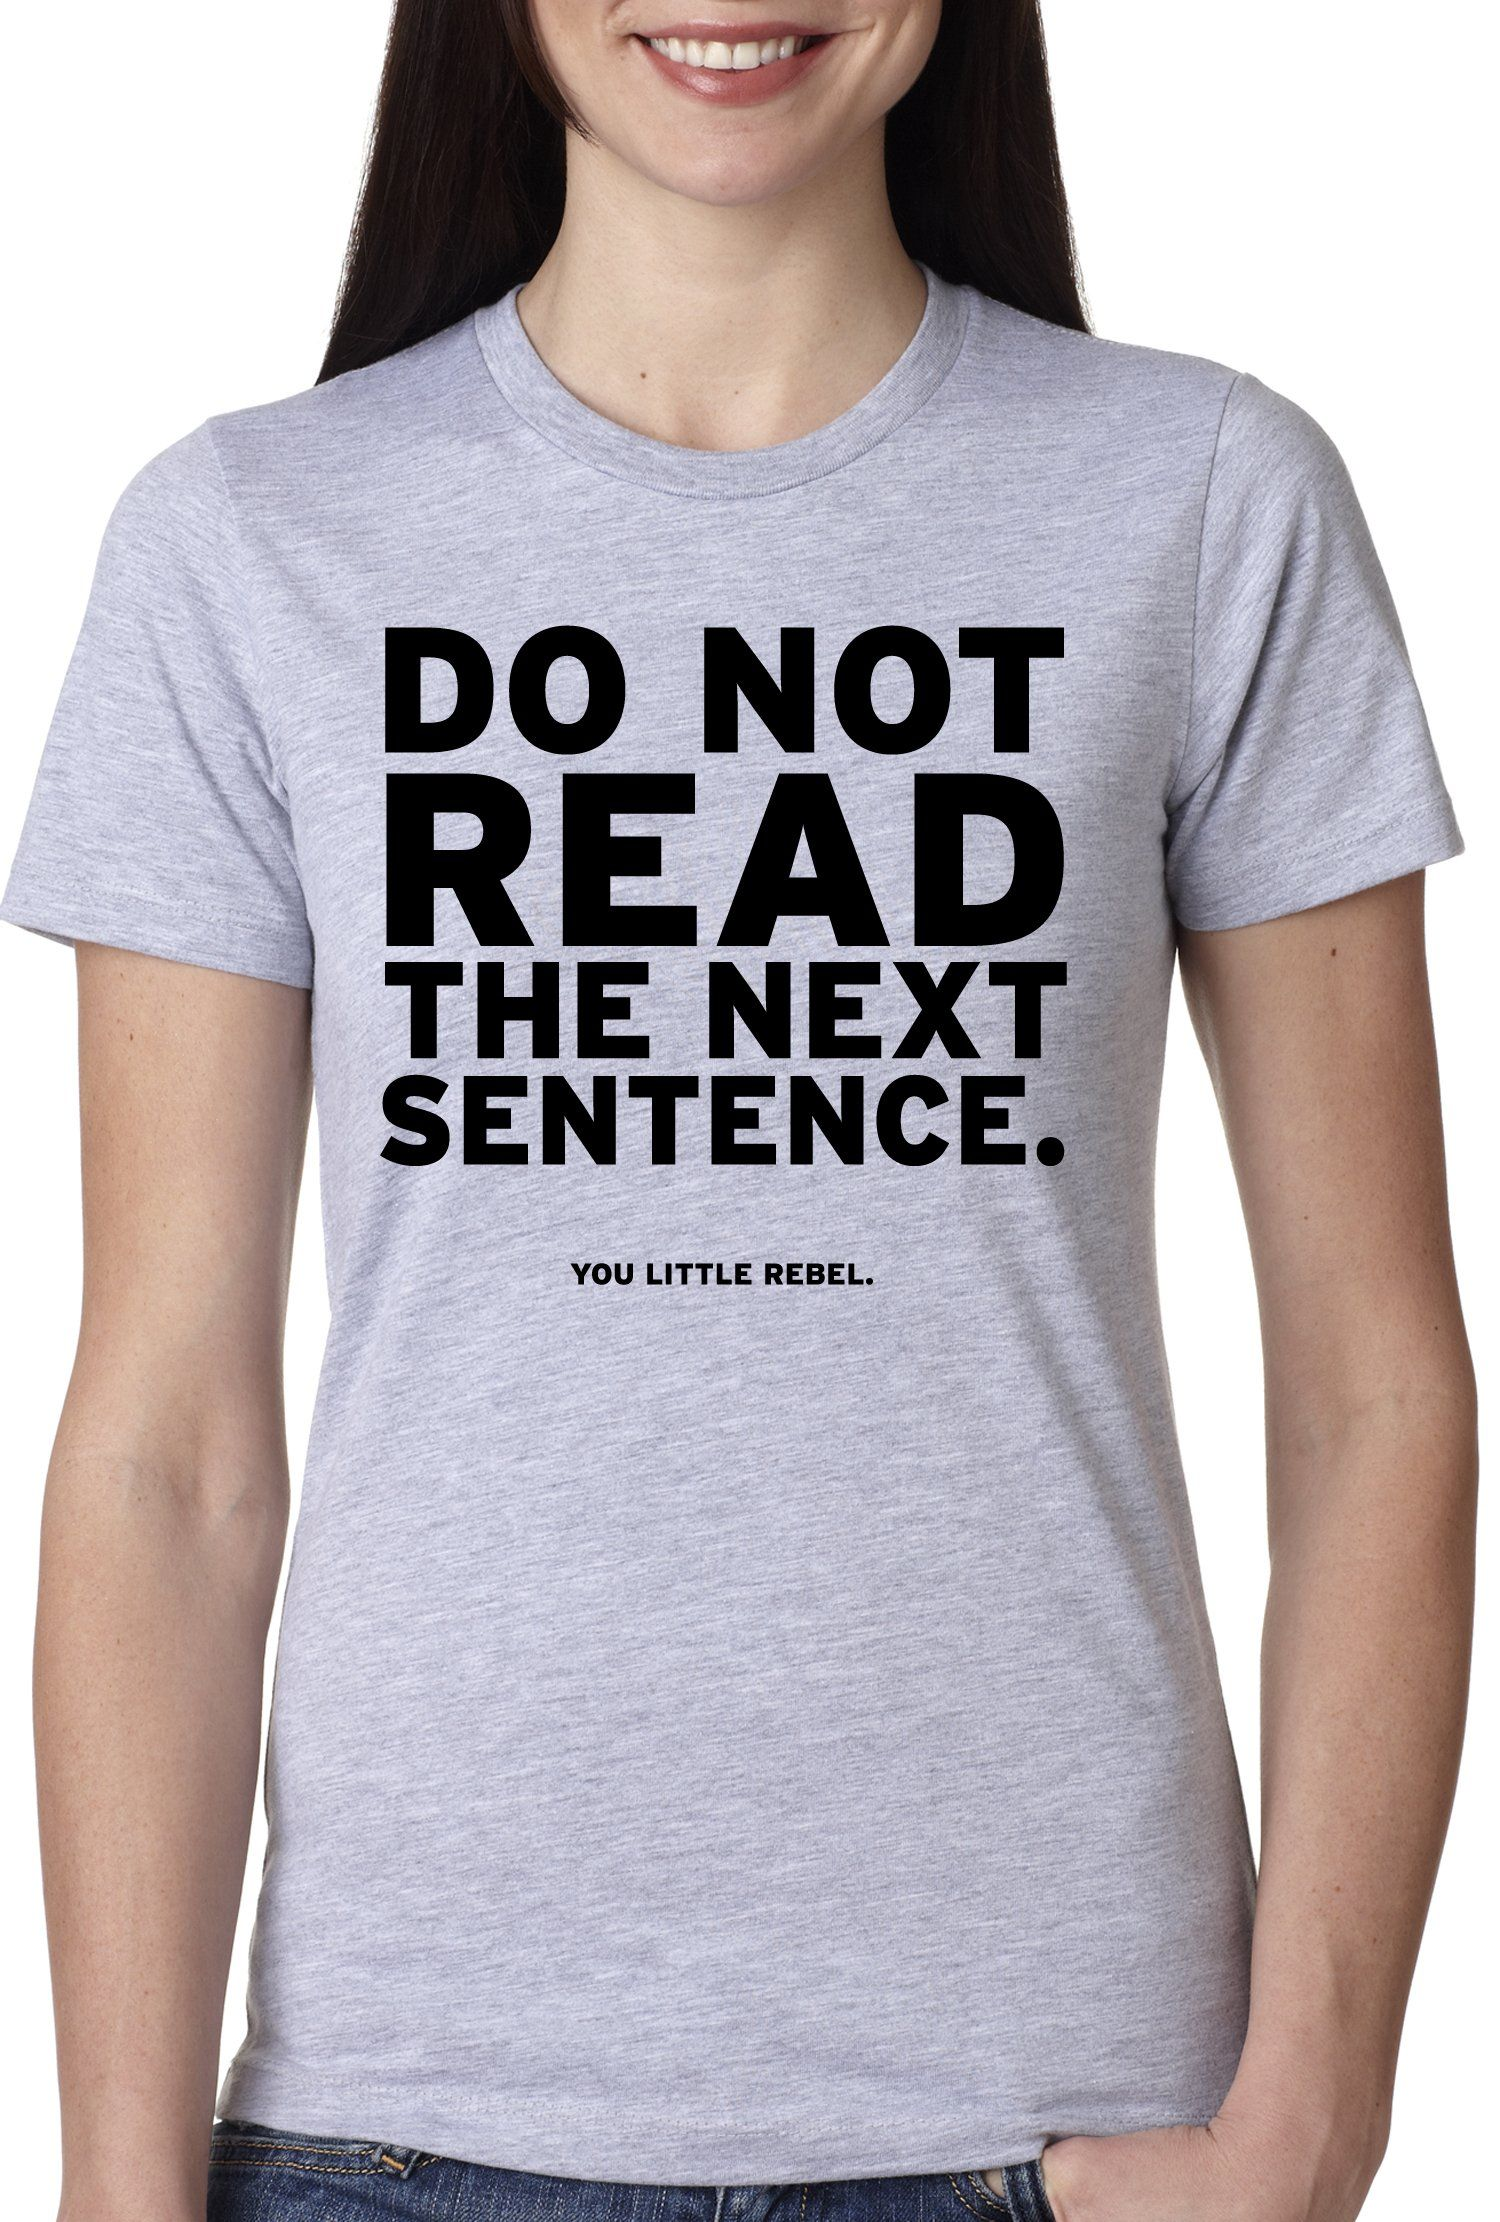 Women's Do Not Read The Next Sentence T Shirt Funny English Shirt ...